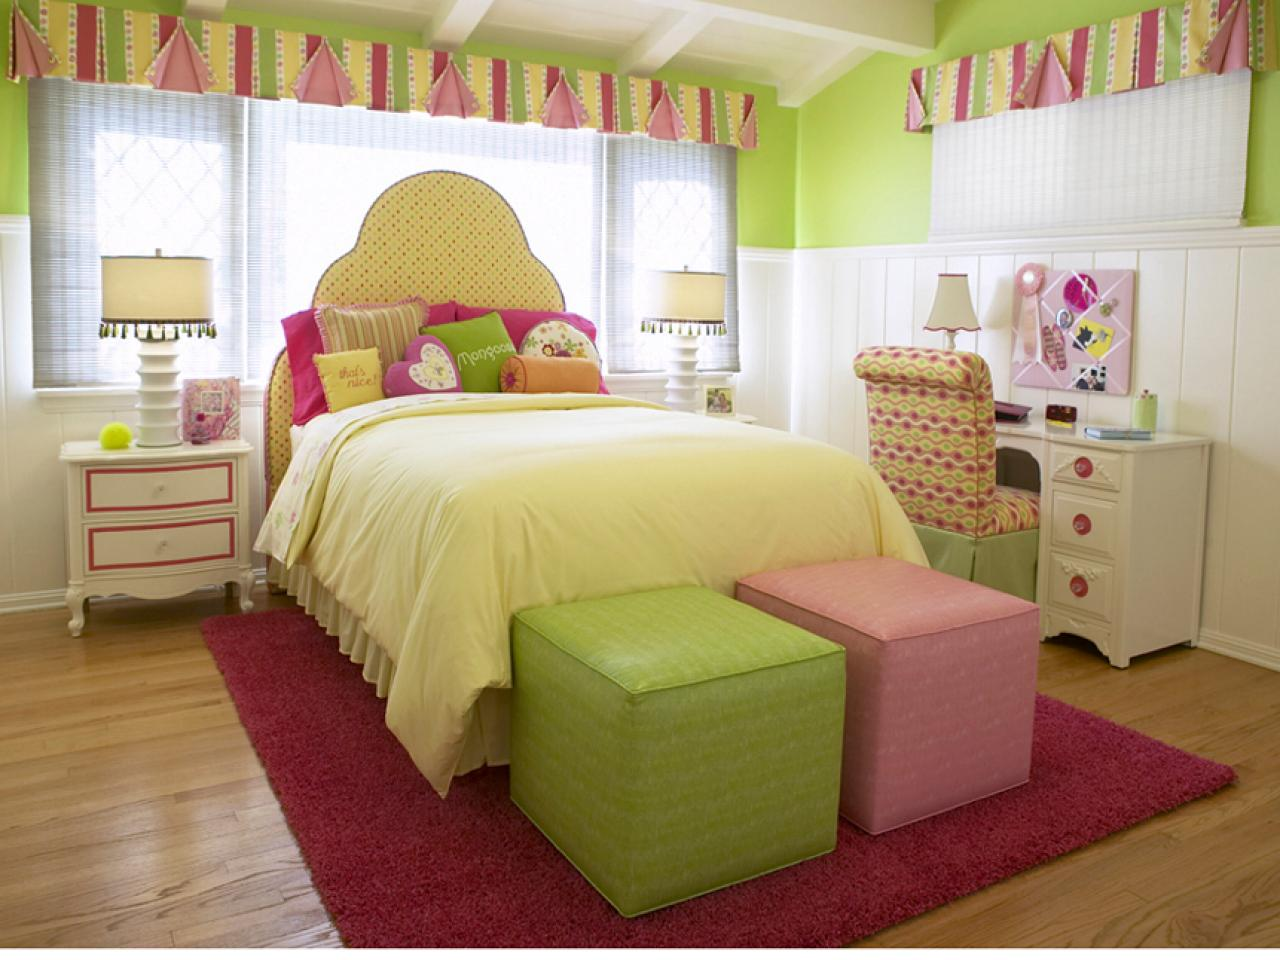 10 Girly Teen Bedrooms Kids Room Ideas For Playroom Bedroom Bathroom HGTV